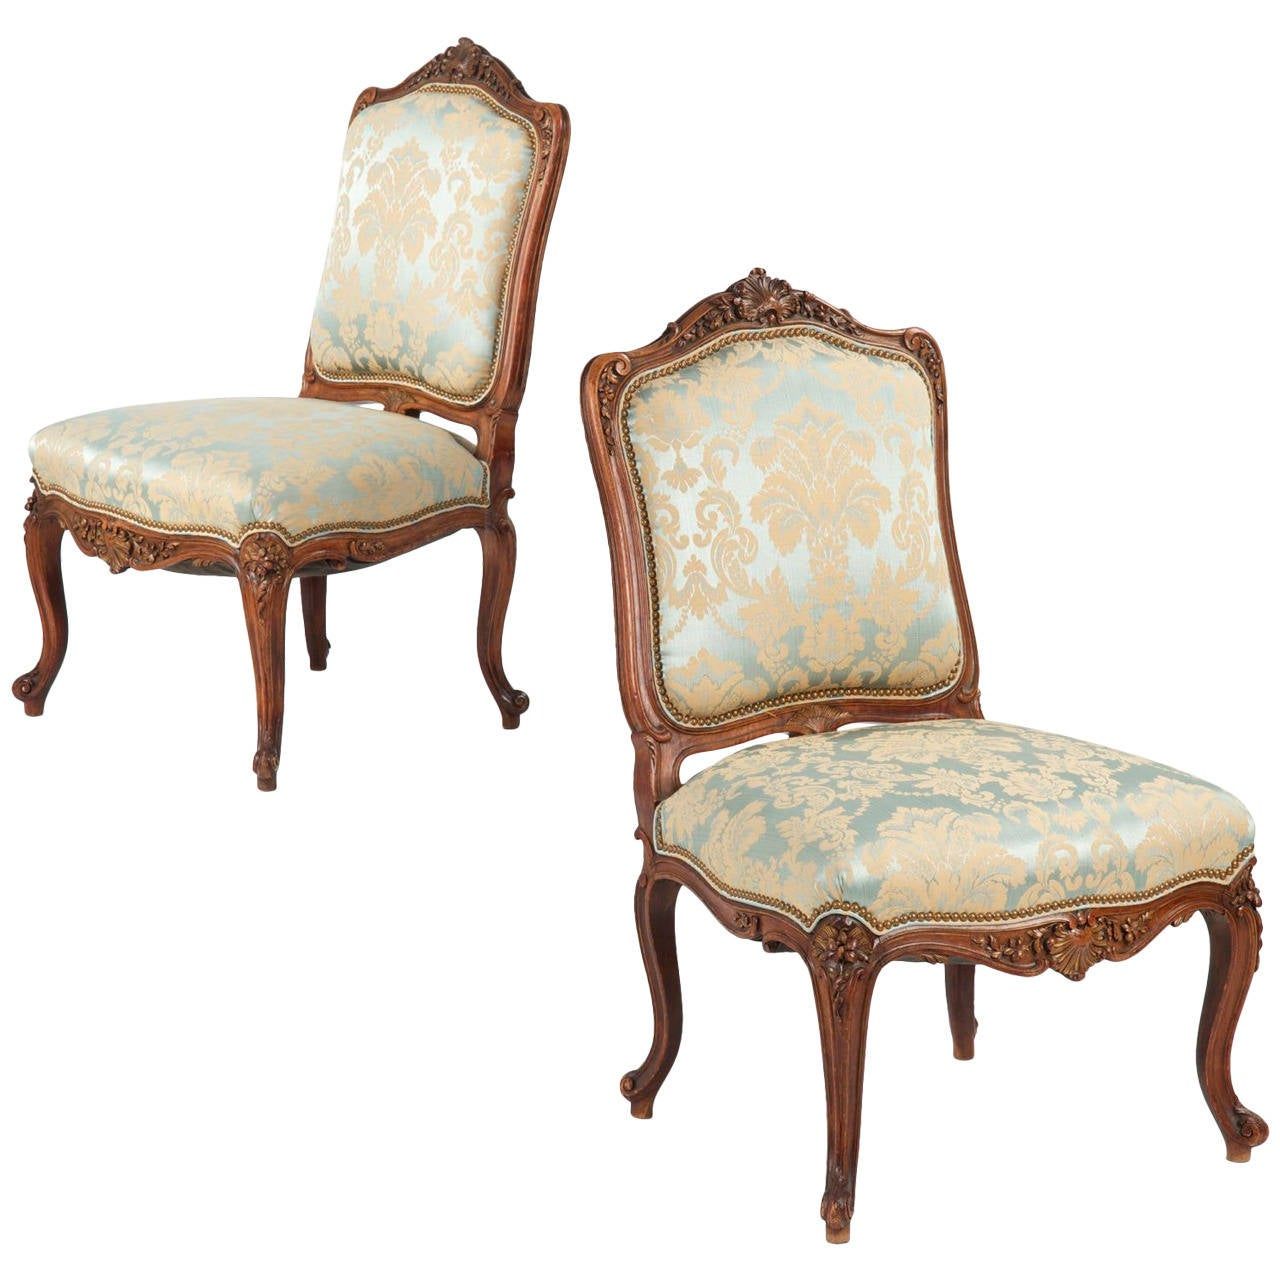 Pair Of French Rococo Revival Antique Walnut Side Chairs 19th - Antique  Revival Furniture - Furniture - Antique Revival Furniture Antique Furniture